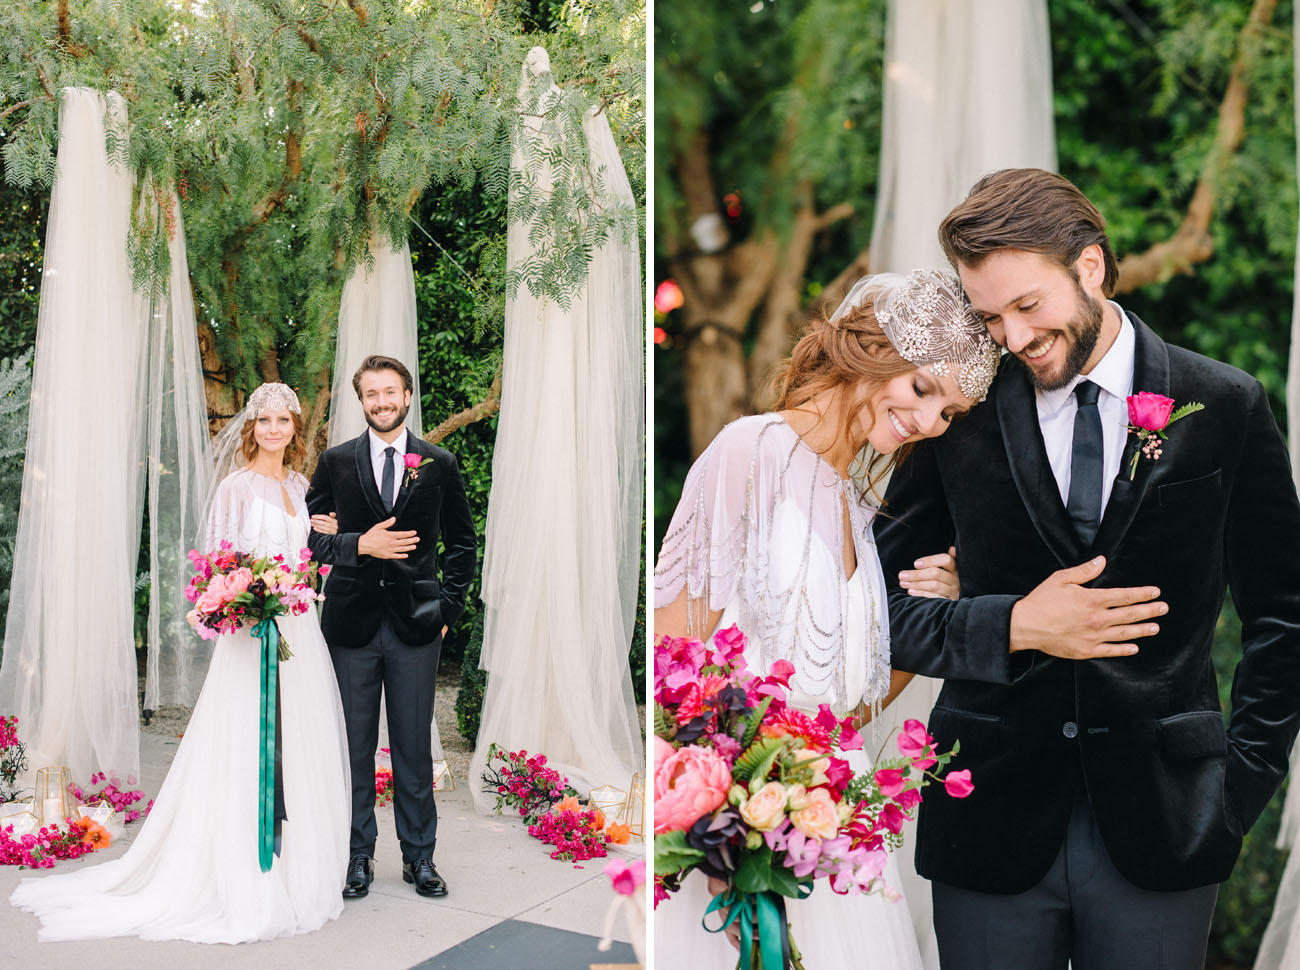 Juliet cape veil adds a chic boho touch to the bridal look